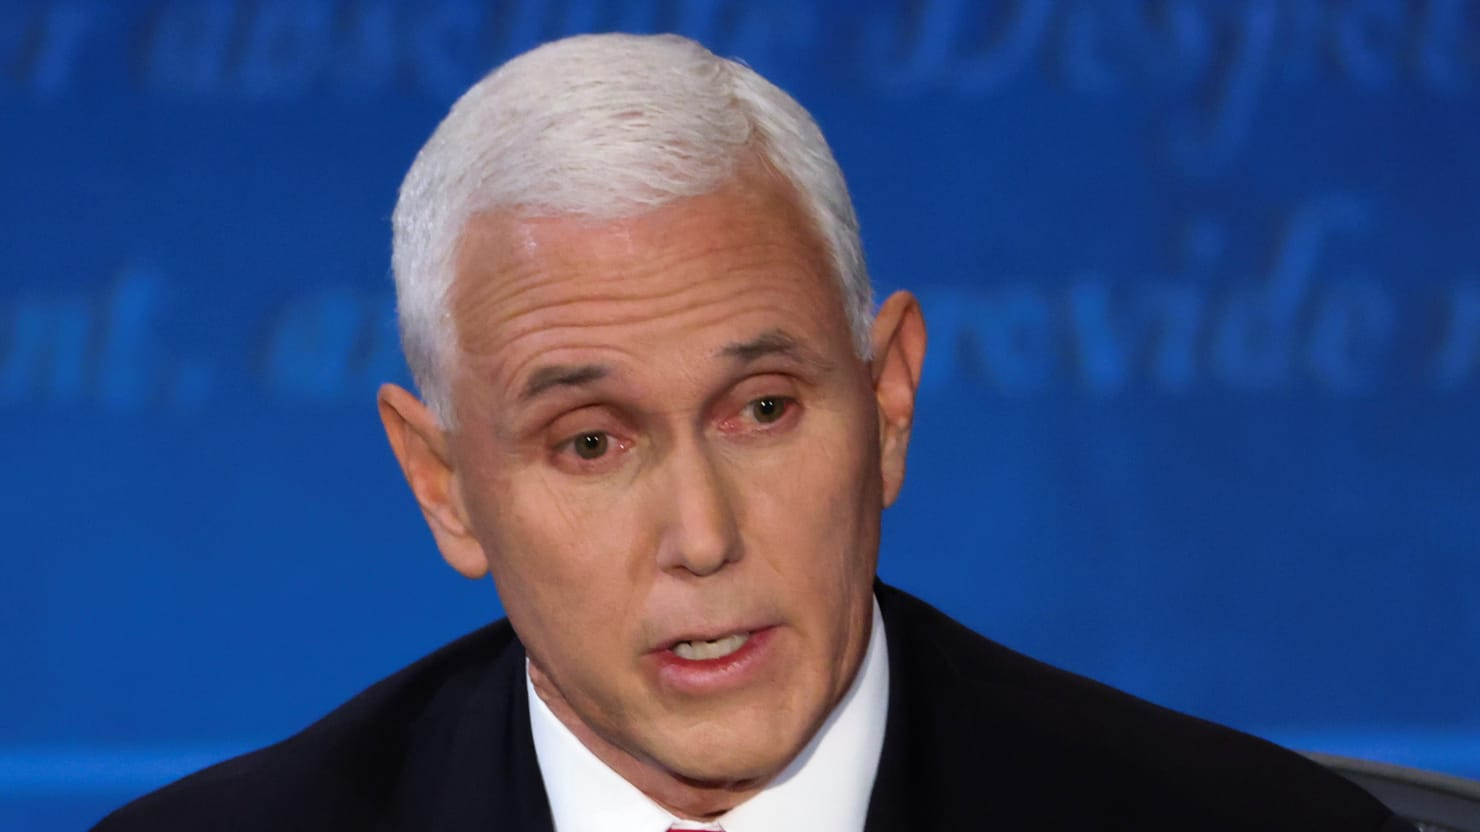 Pence Says Trump Respects Science, Then Ignores Science on Climate Change